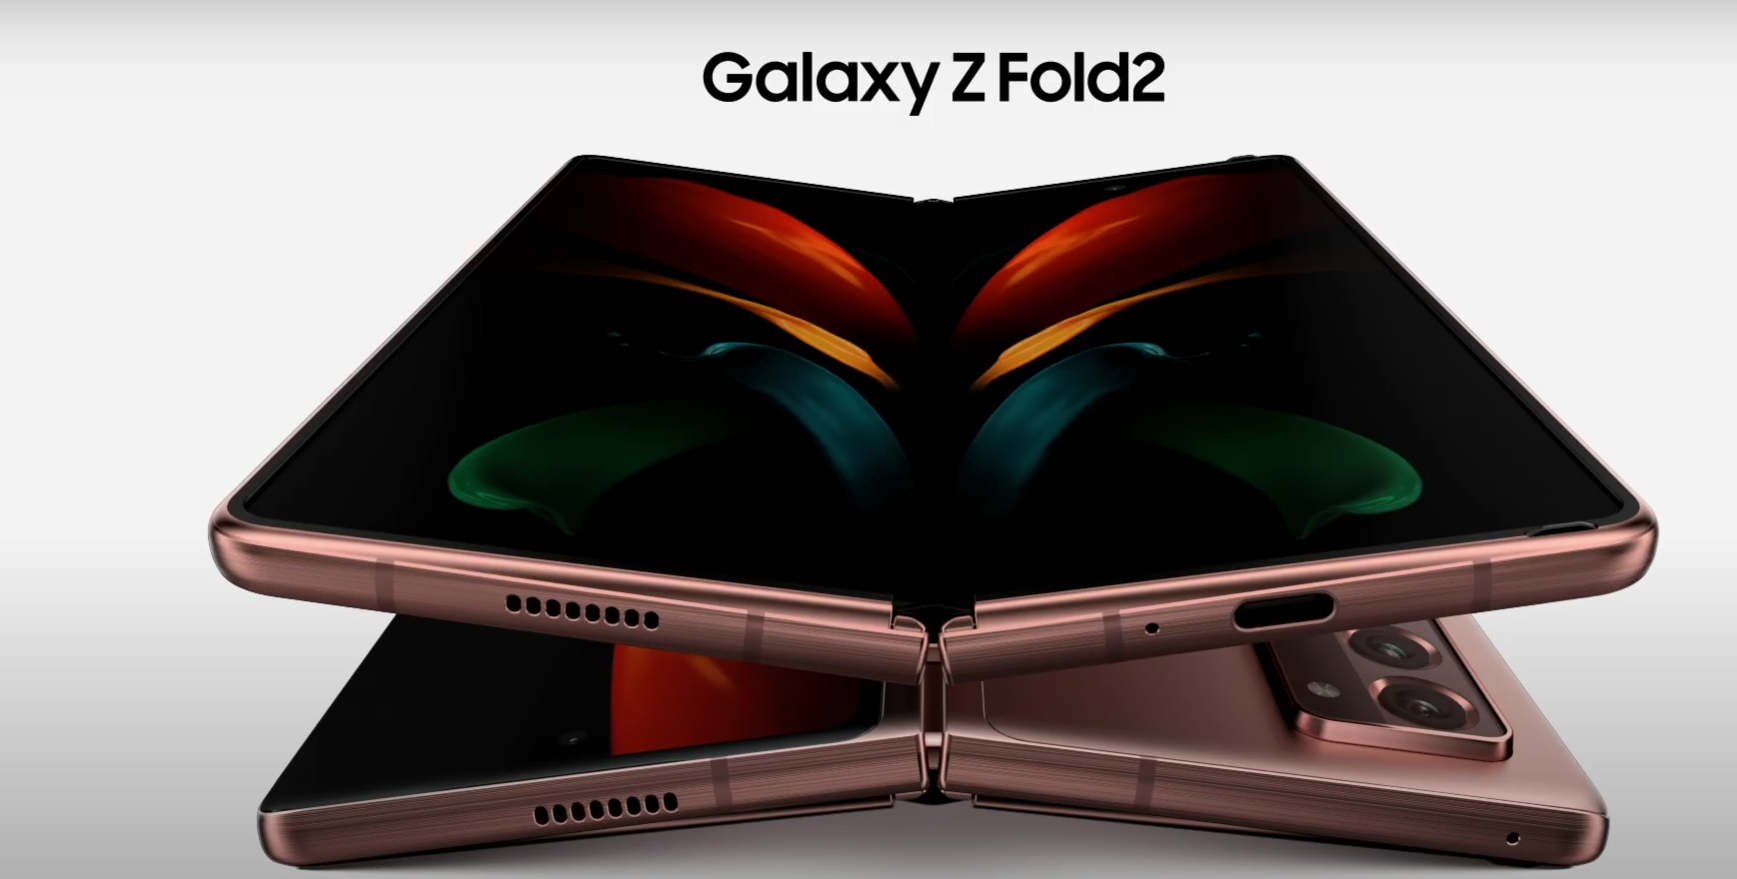 Galaxy Z Fold 2's price may have leaked, and it could be cheaper than last year's